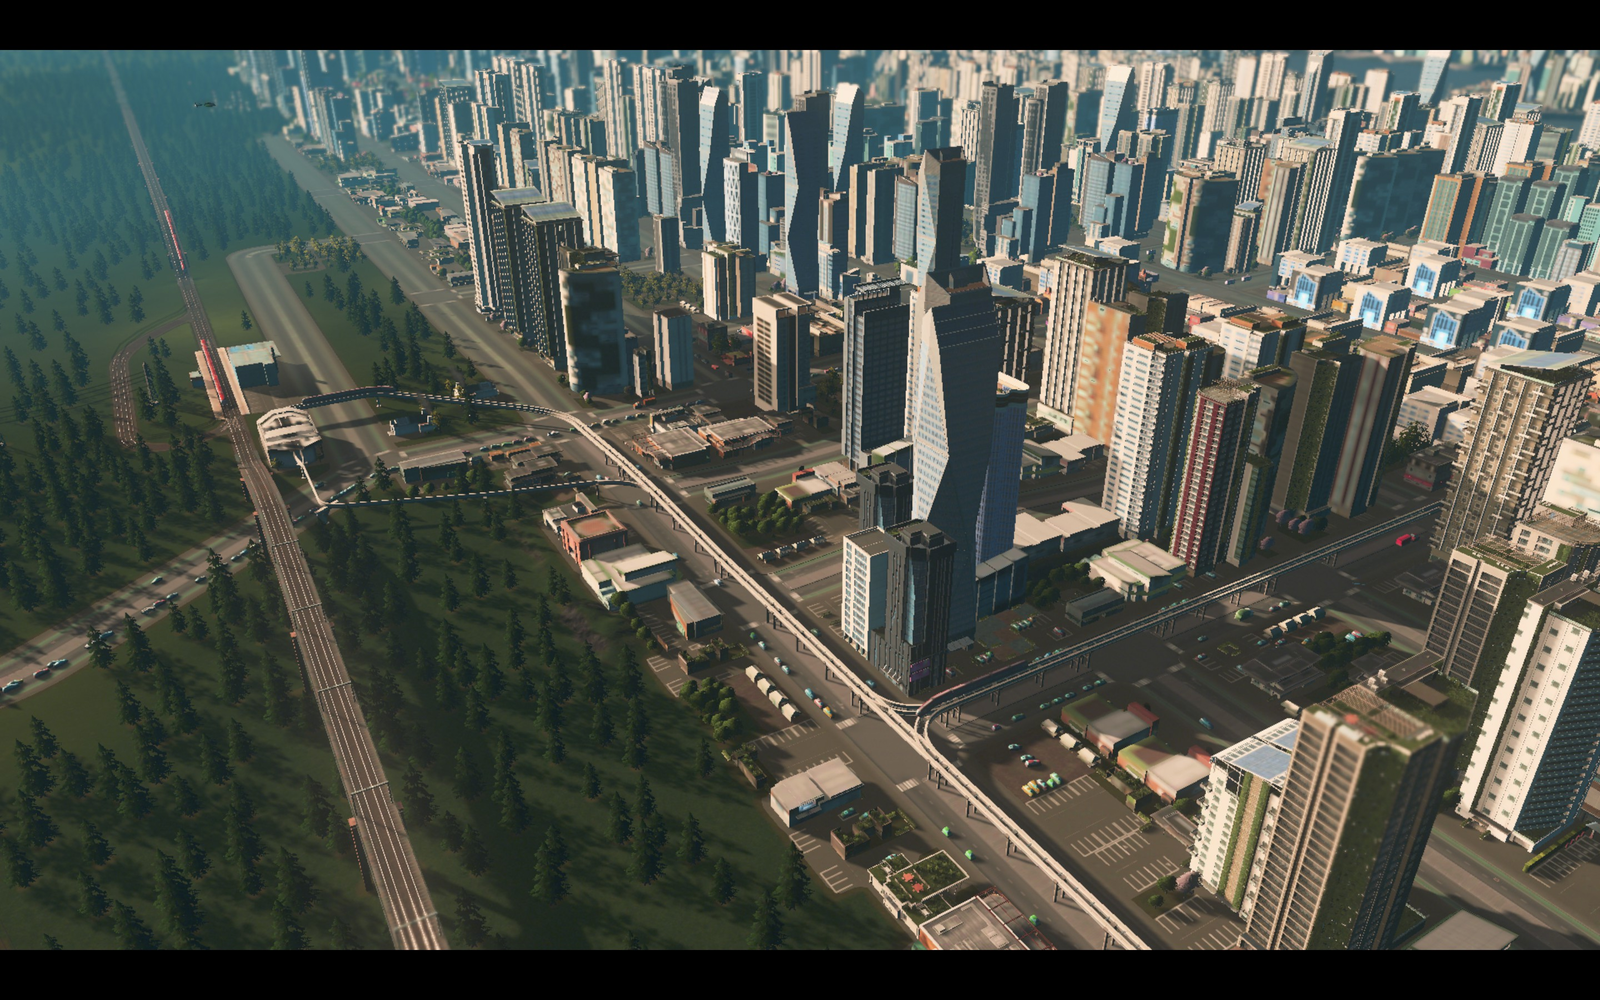 Umber Square train and monorail connections. As you can tell by the huge pile up in that road, traffic is still an issue.